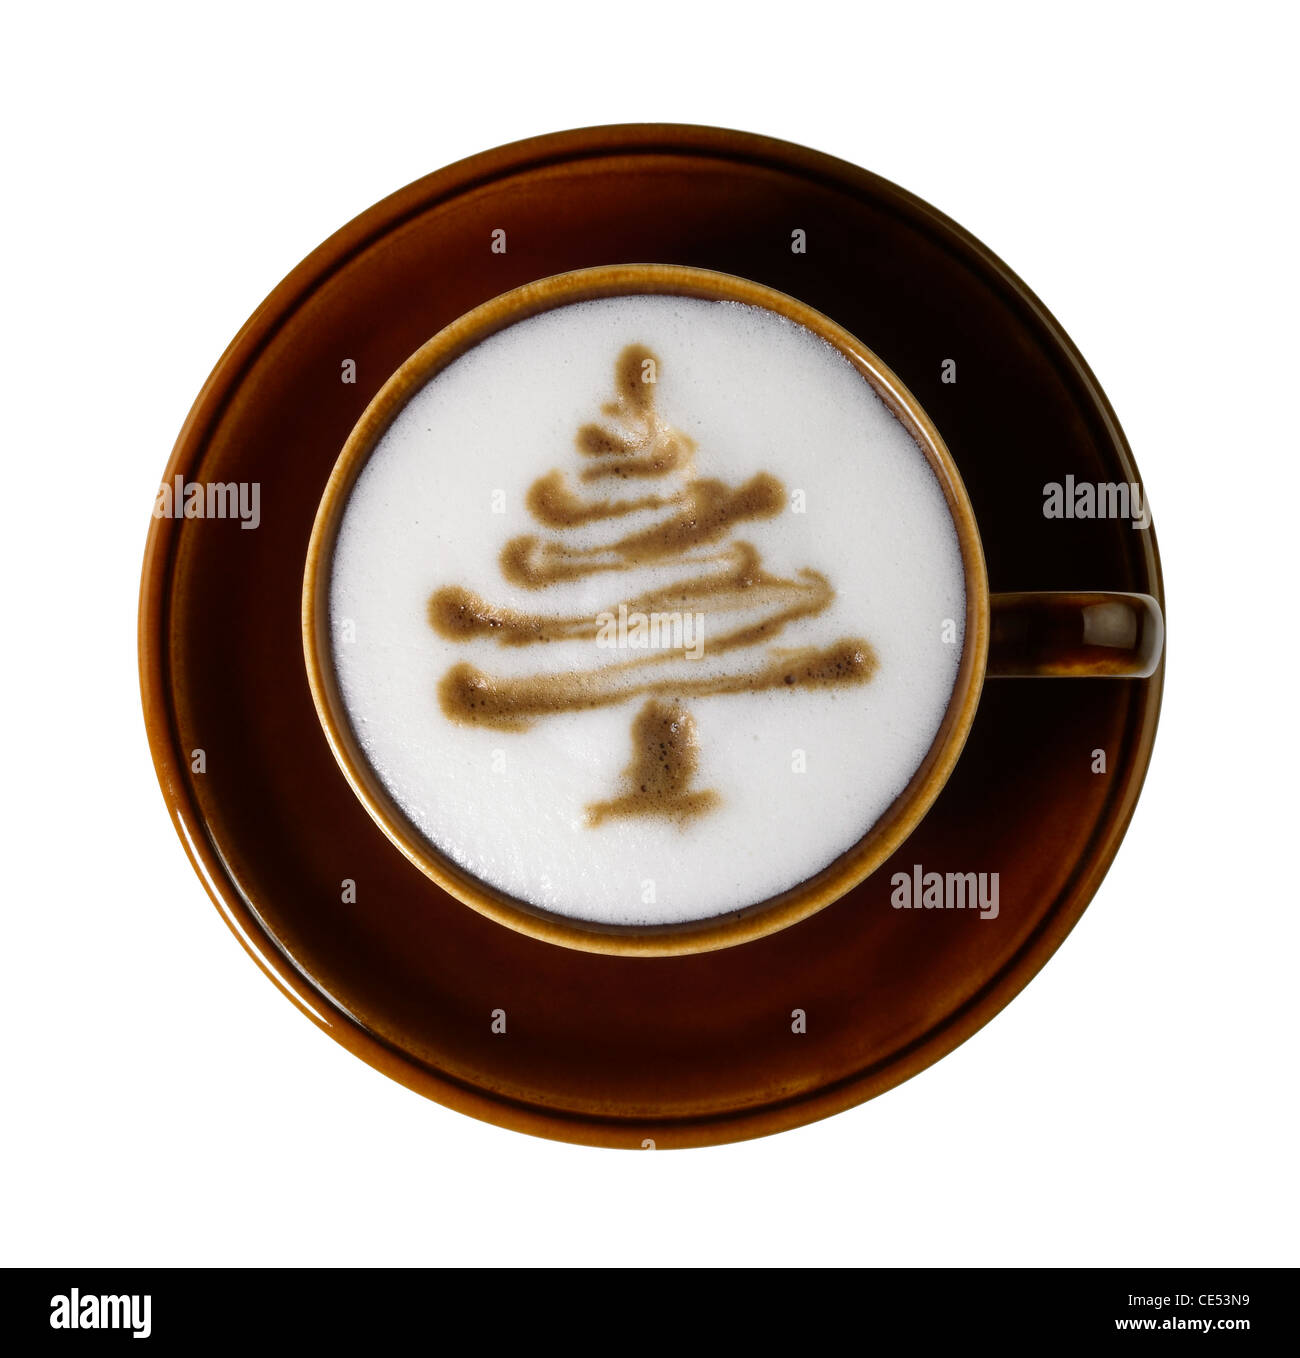 cup of coffee with marbled milk froth, isolated on white with clipping path, seen from above - Stock Image